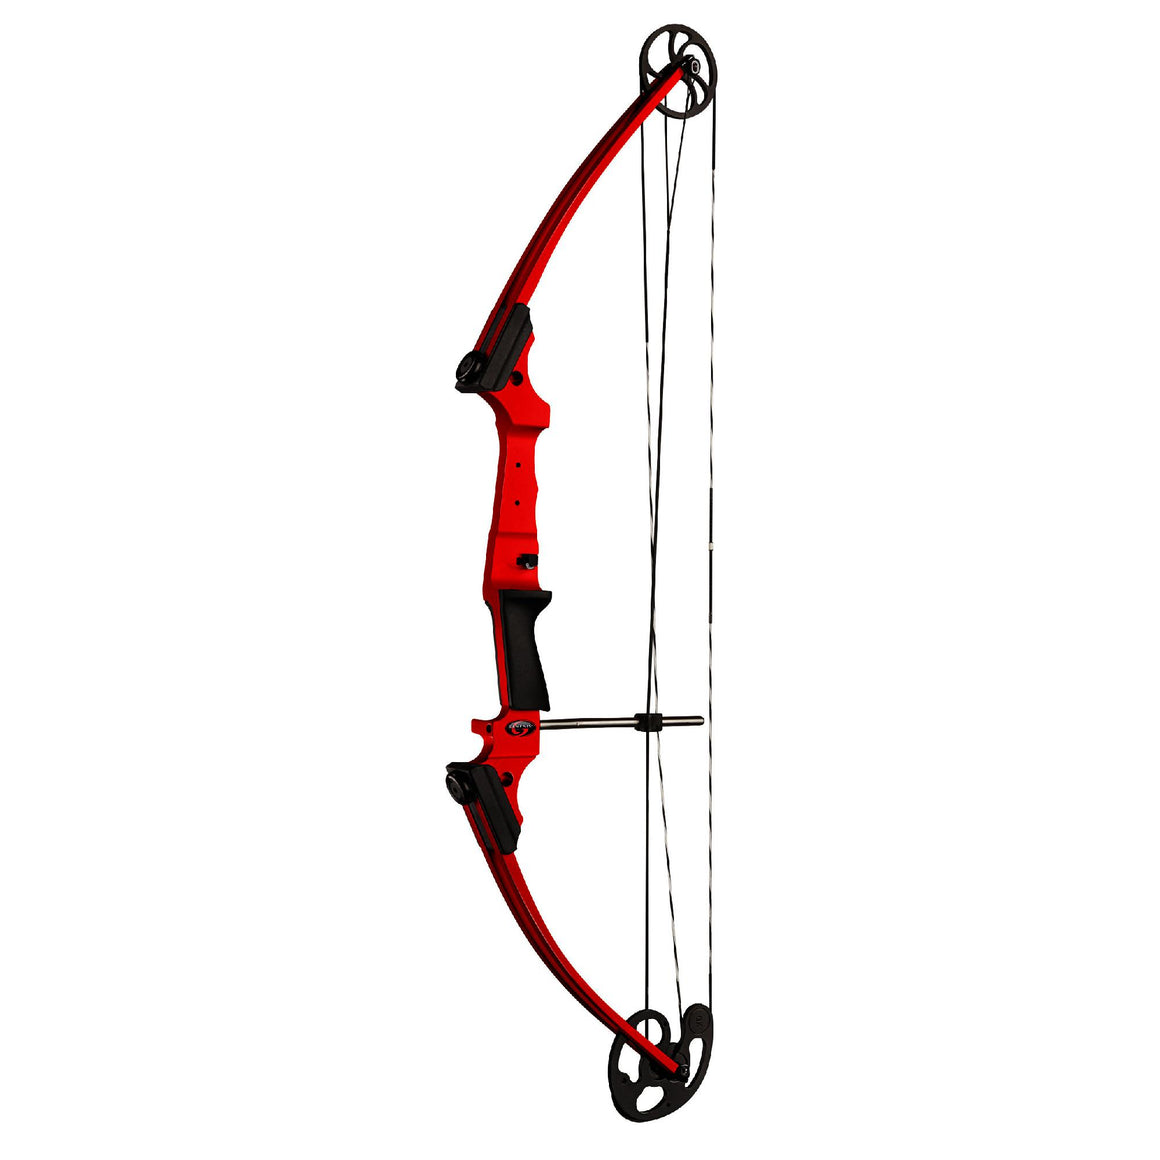 Original Bow with Kit - Right Handed, Red